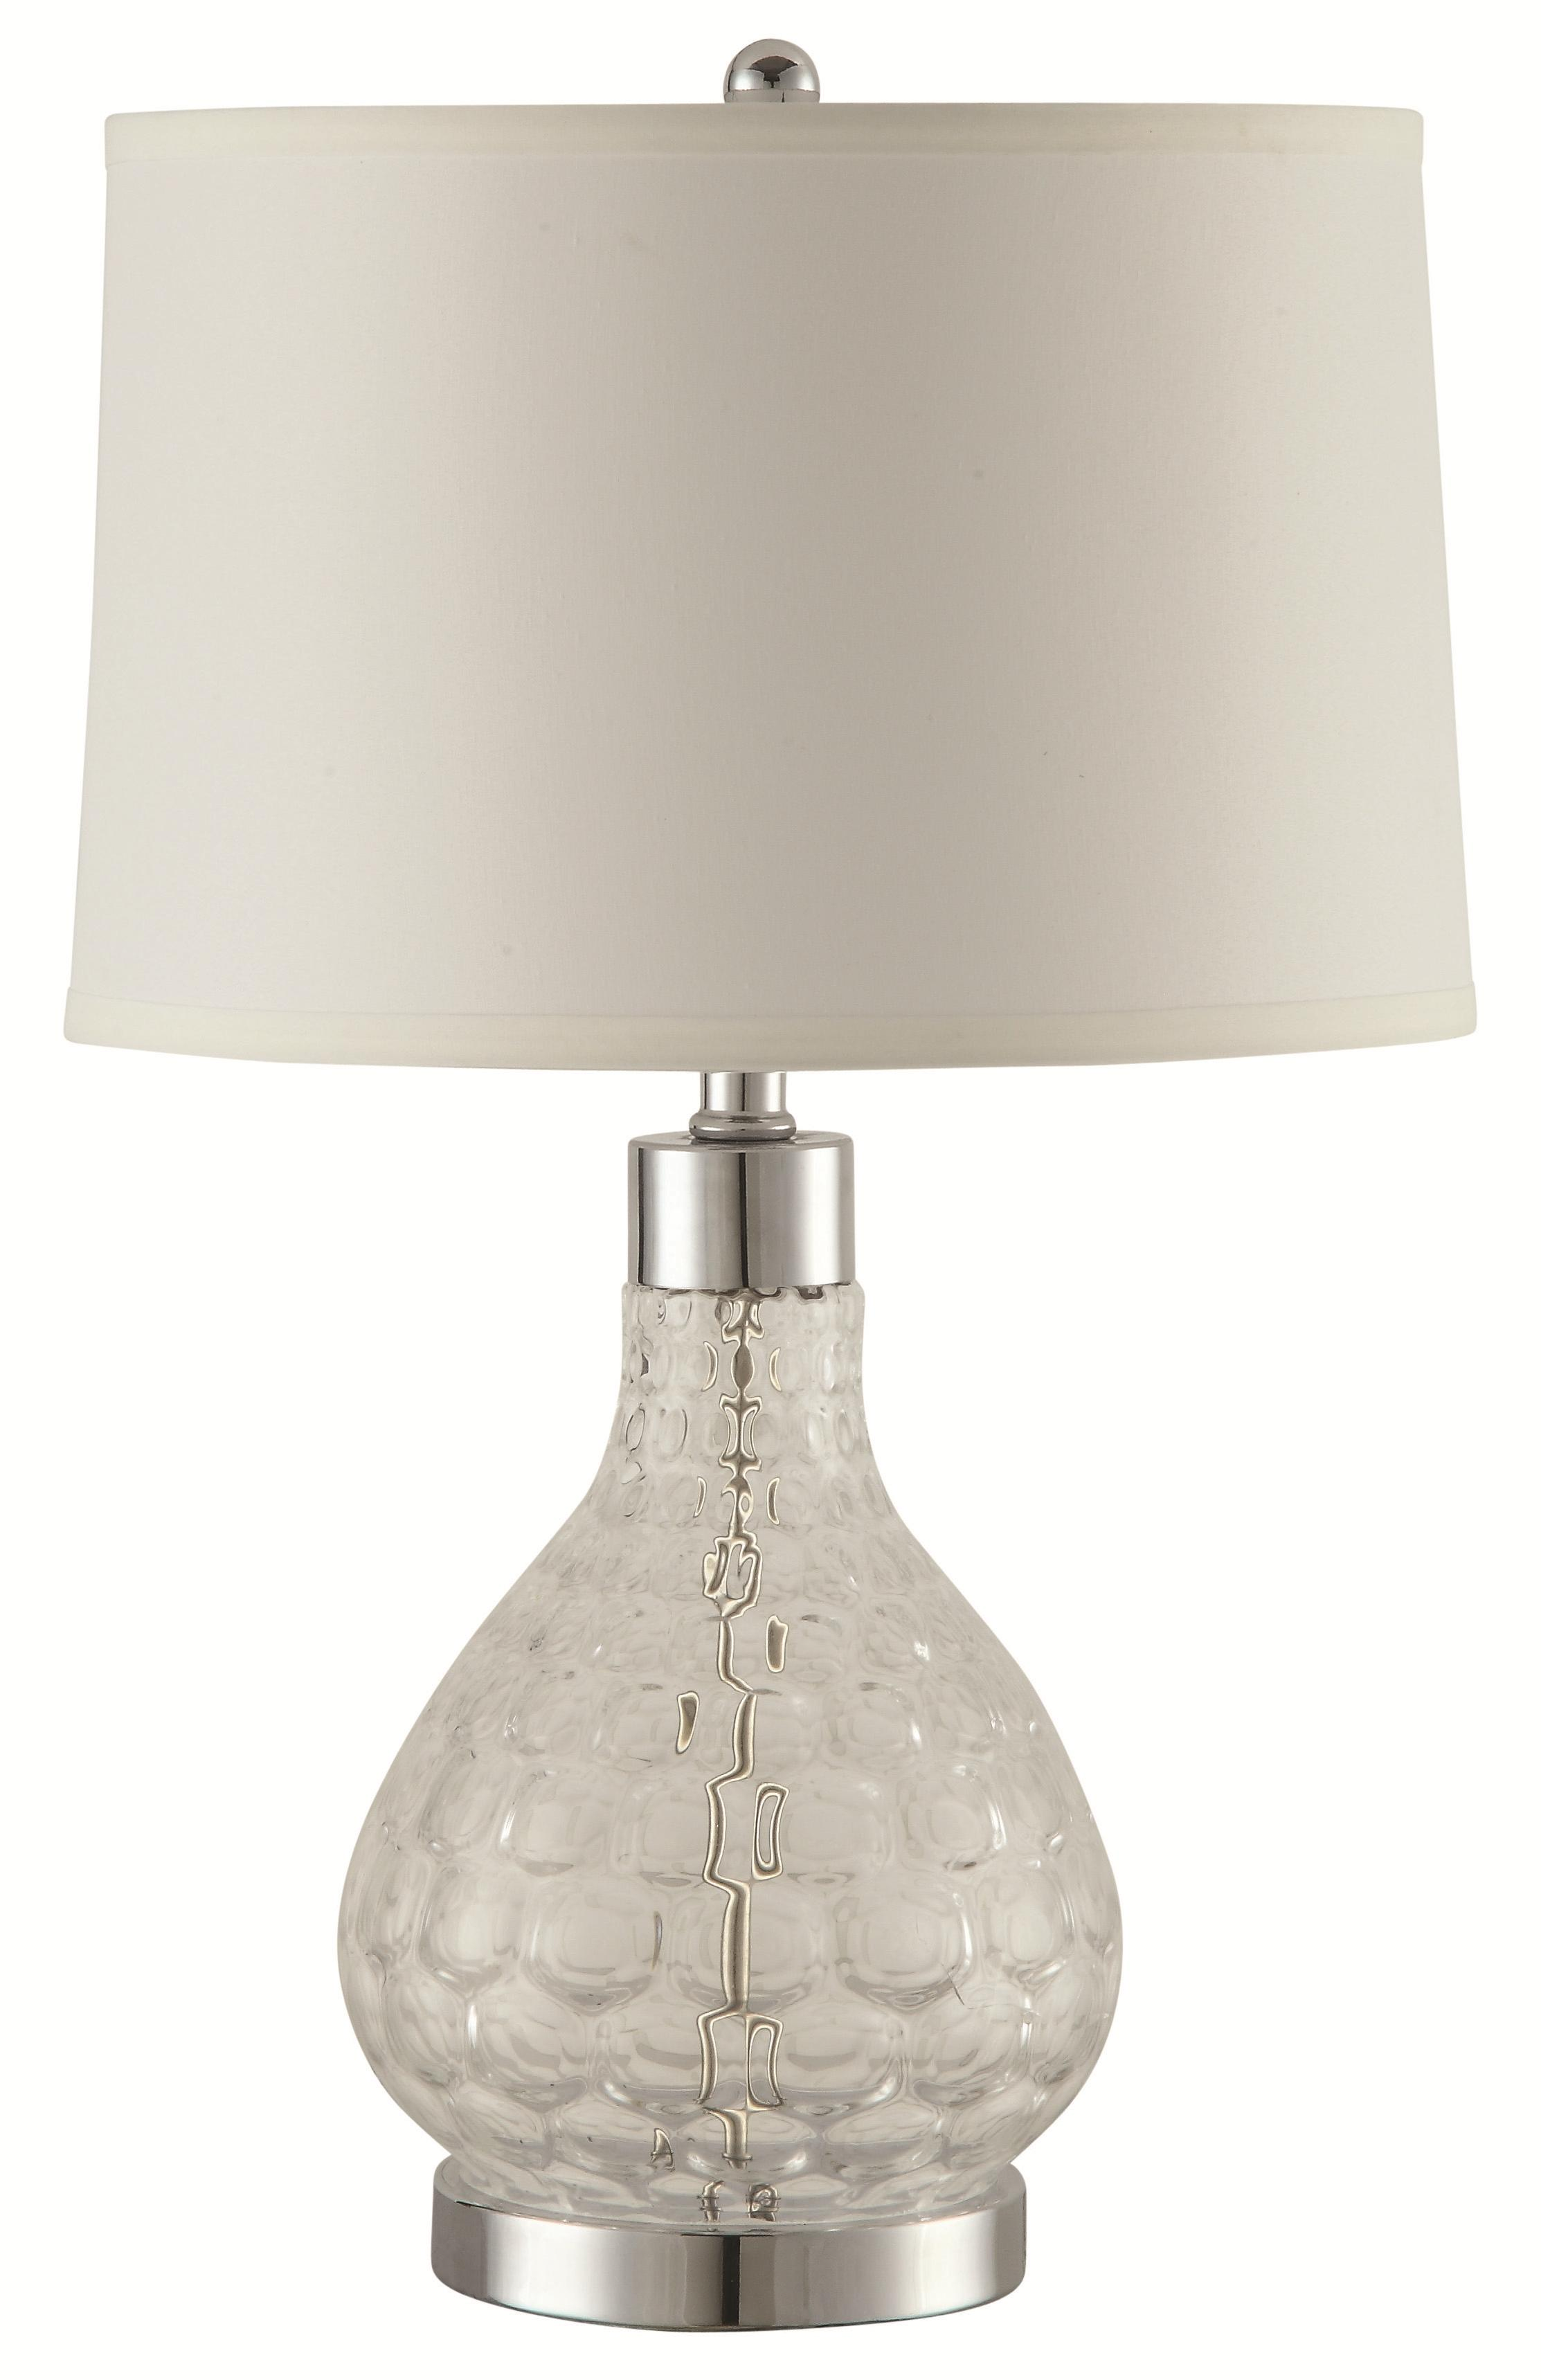 Coaster Table Lamps Table Lamp - Item Number: 901547